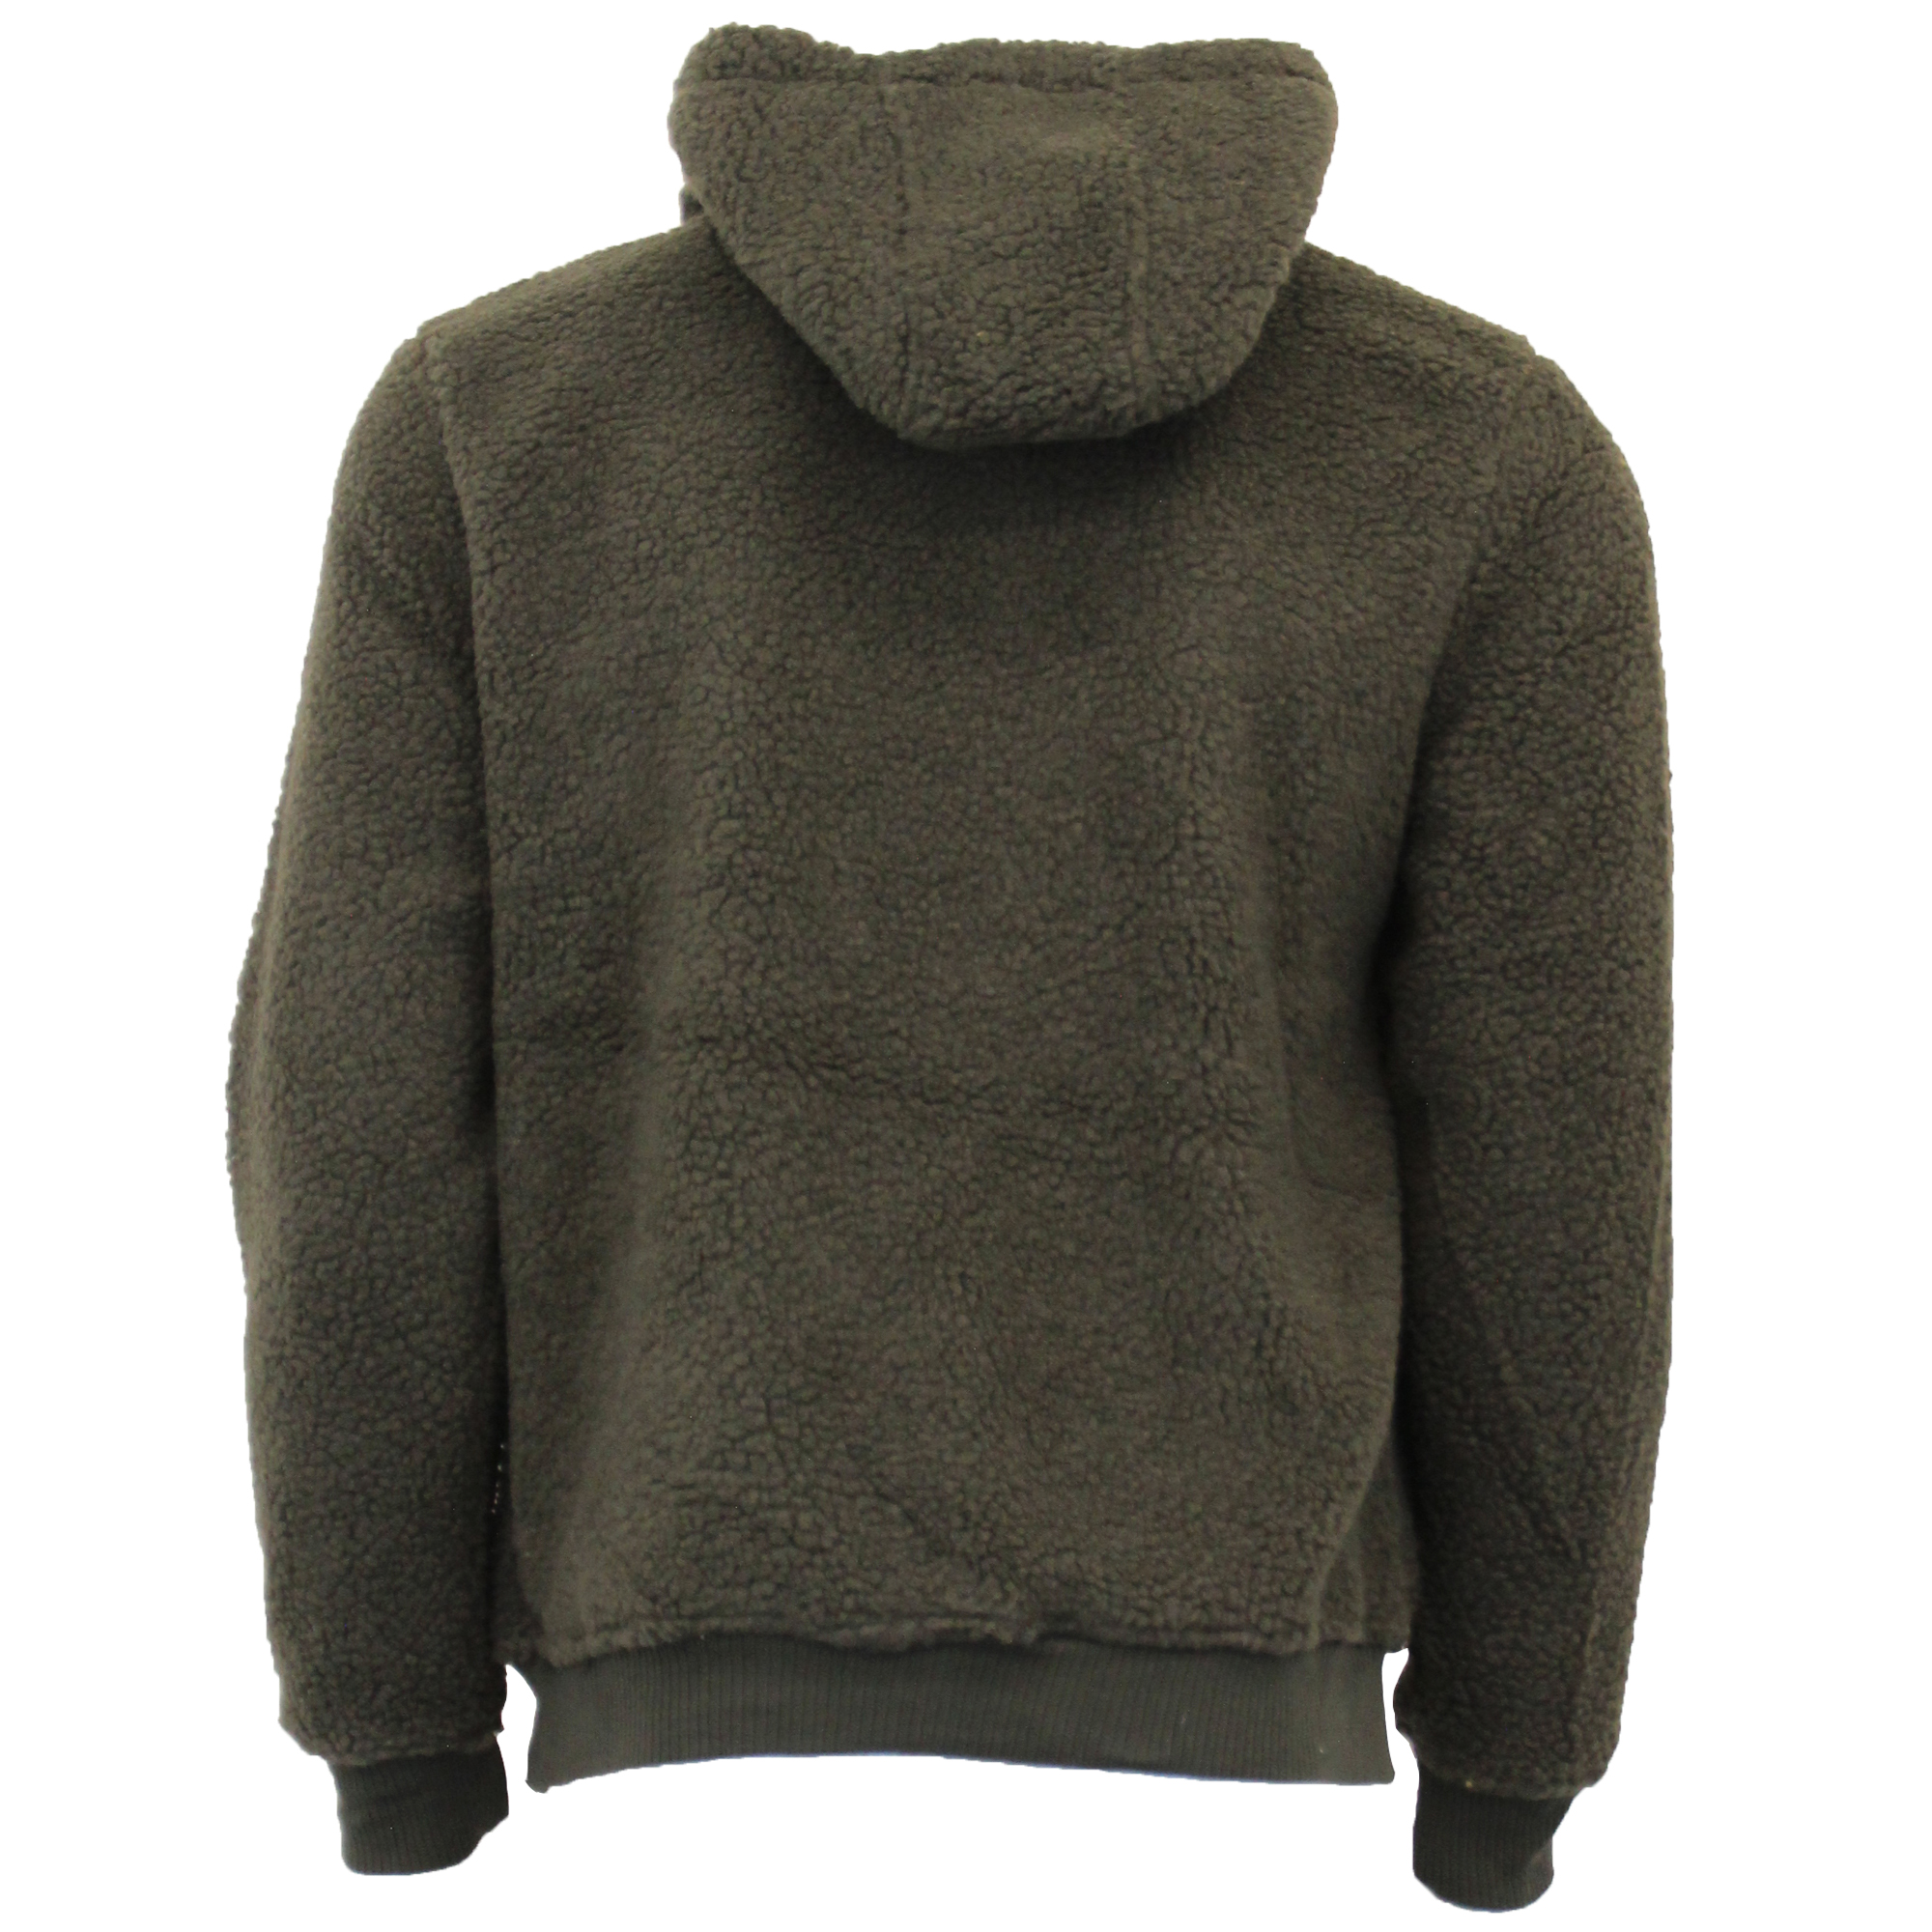 Mens-Sherpa-Fleece-Borg-Sweatshirt-Brave-Soul-Over-The-Head-GROMIT-Hooded-Top thumbnail 8